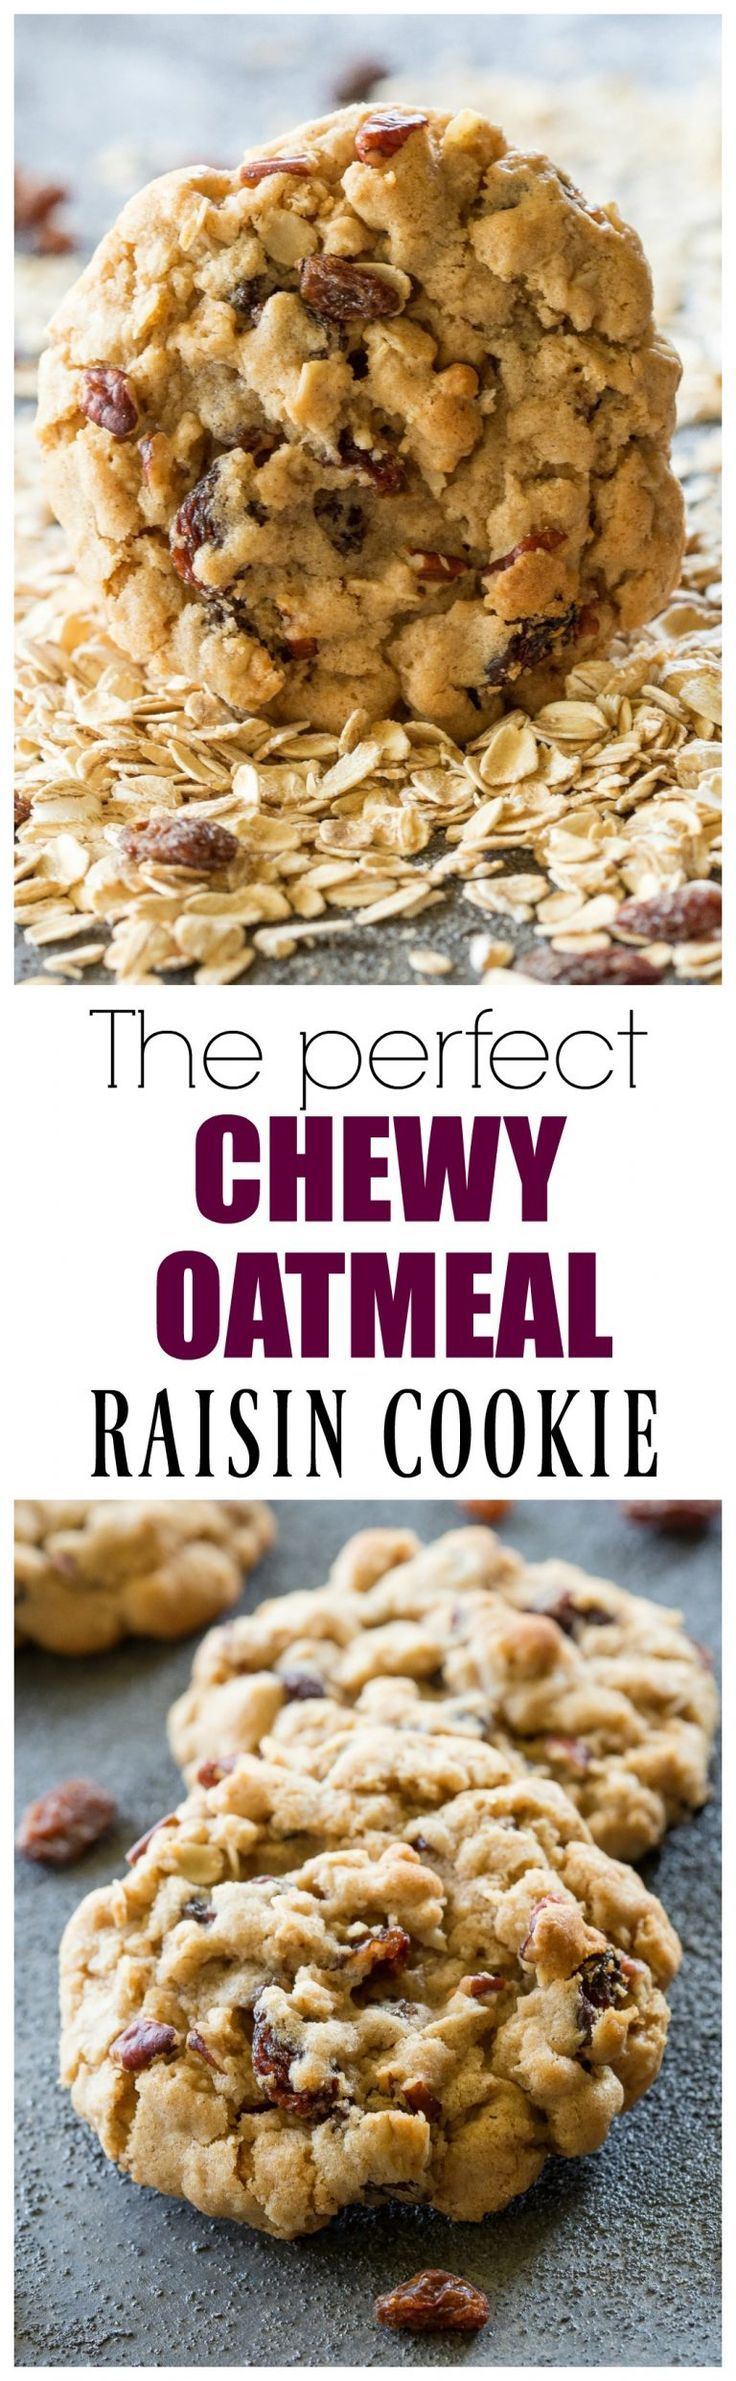 The Best Chewy Oatmeal Raisin Cookies - perfect texture, full of oats, raisins, and nuts. the-girl-who-ate-everything.com